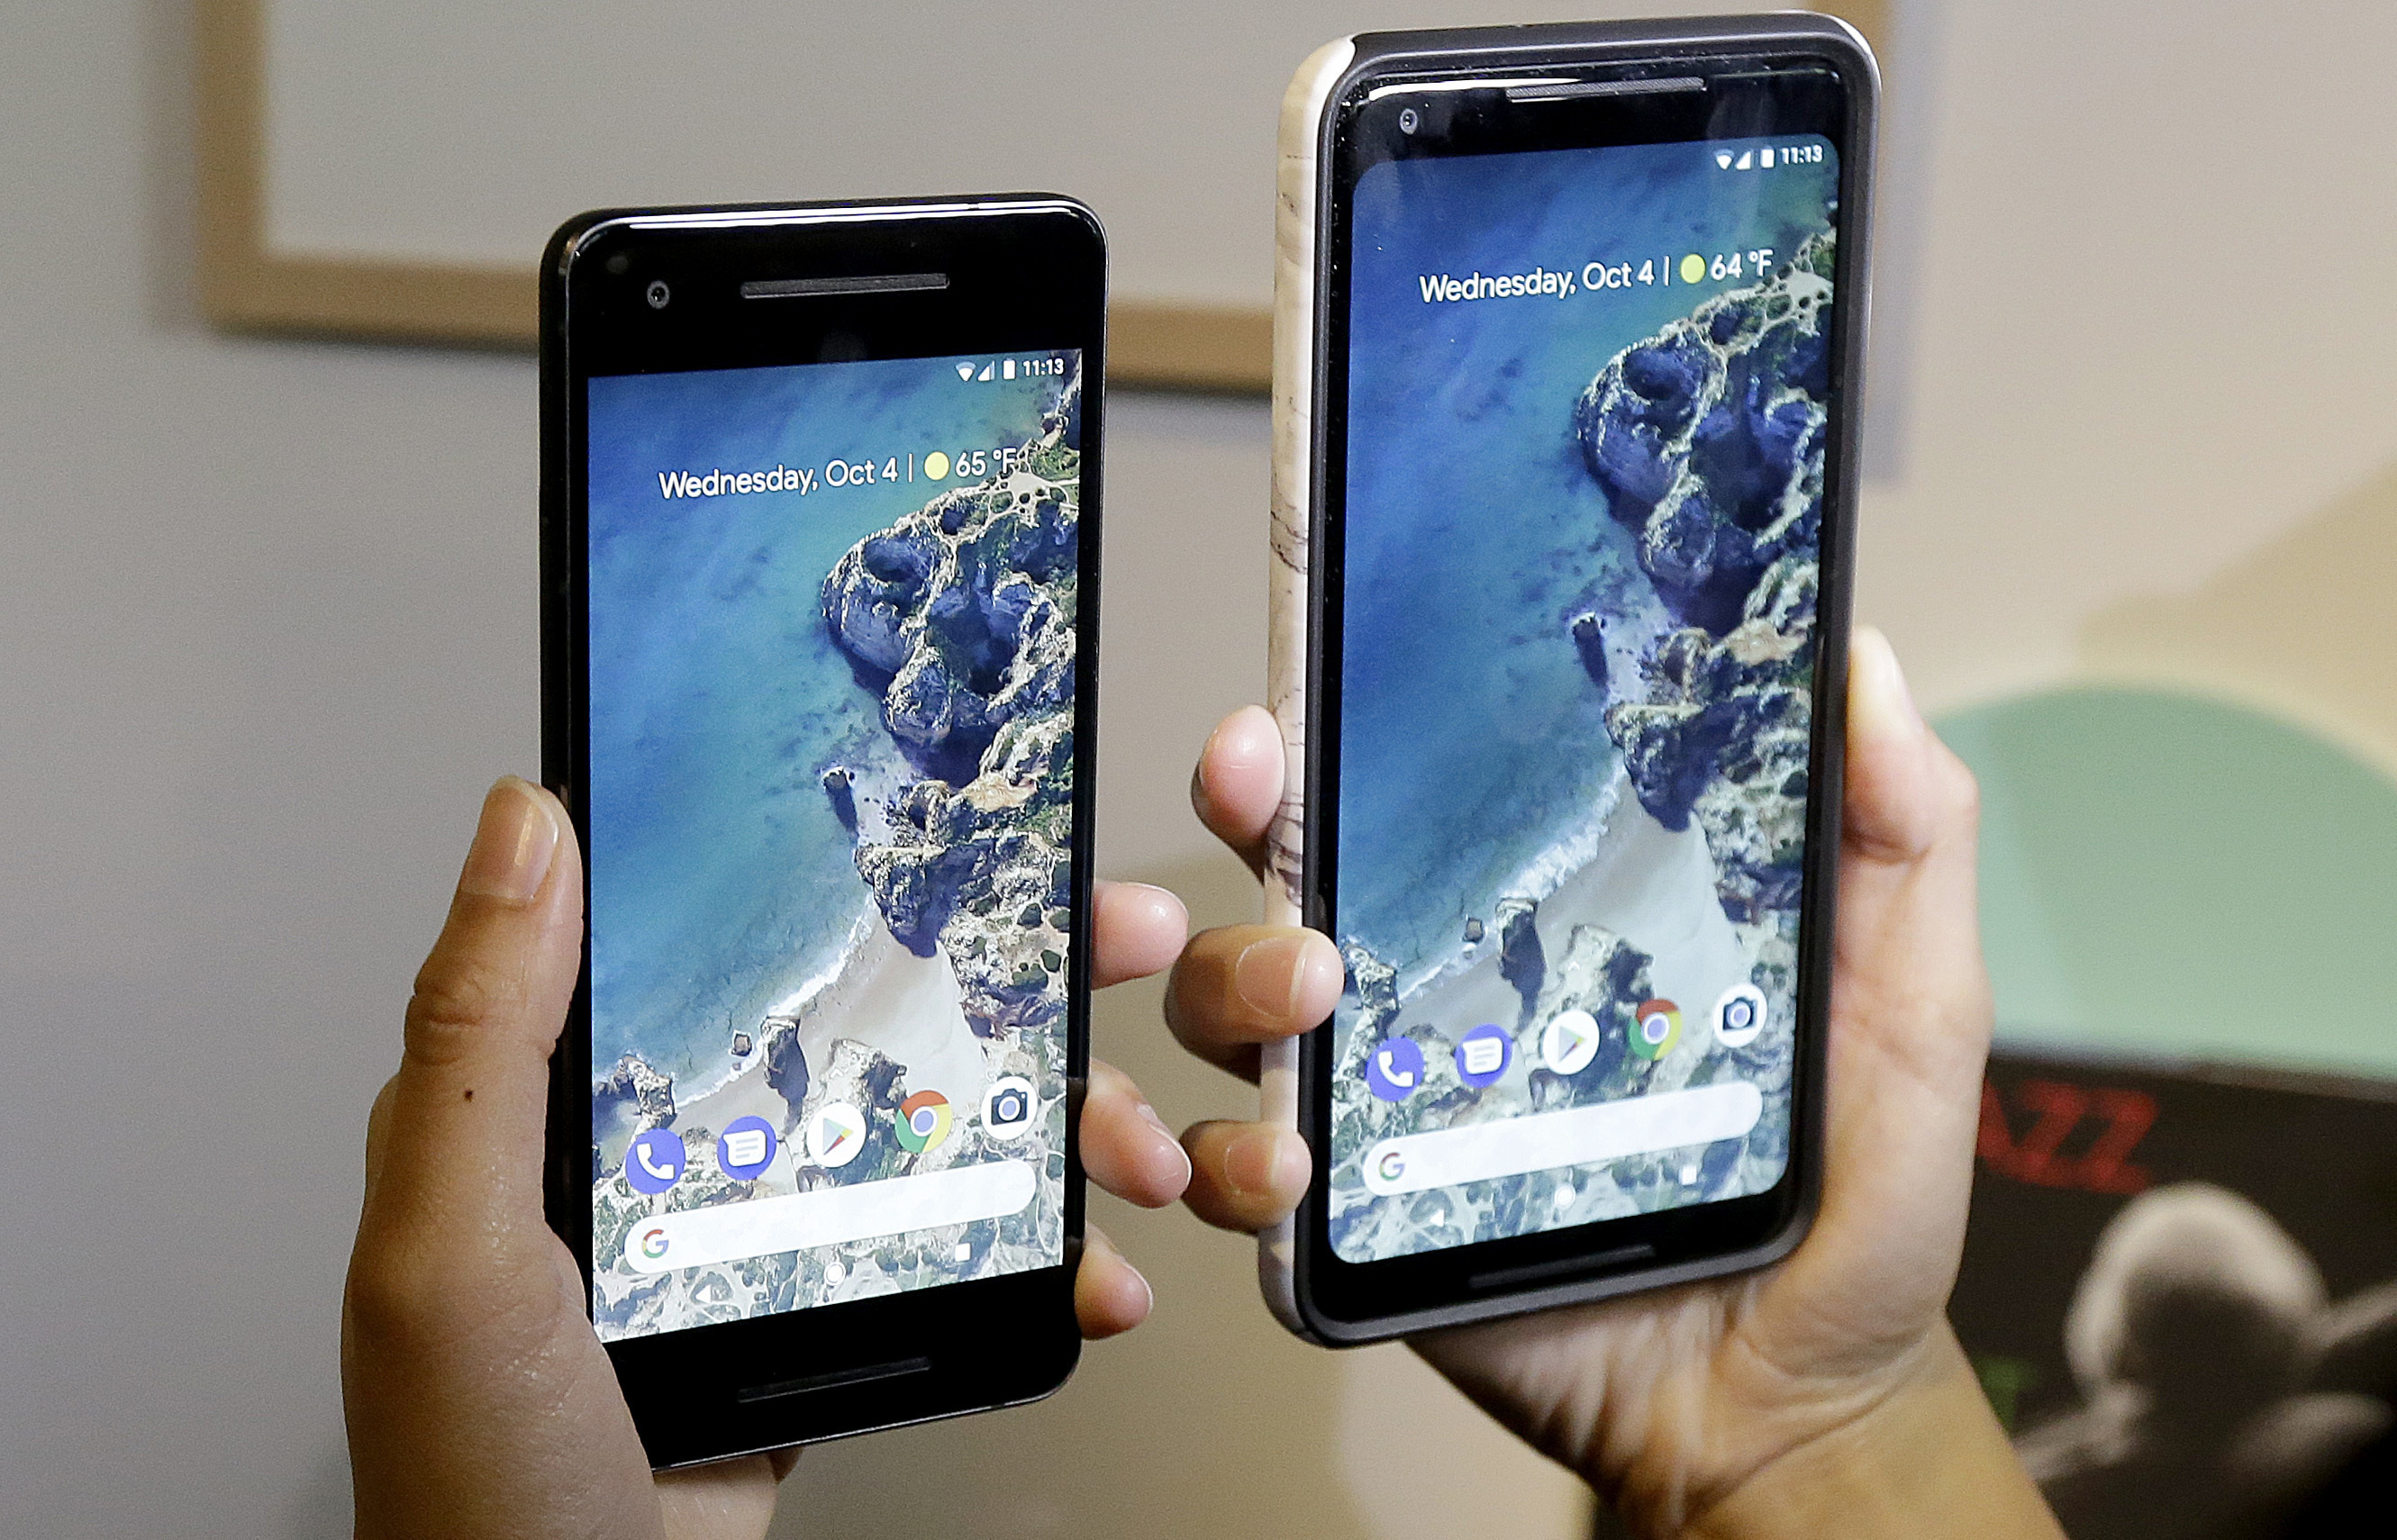 FILE - A woman holds up the Google Pixel 2 phone, left, next to the Pixel 2 XL phone at a Google event at the SFJAZZ Center in San Francisco, Oct. 4, 2017.